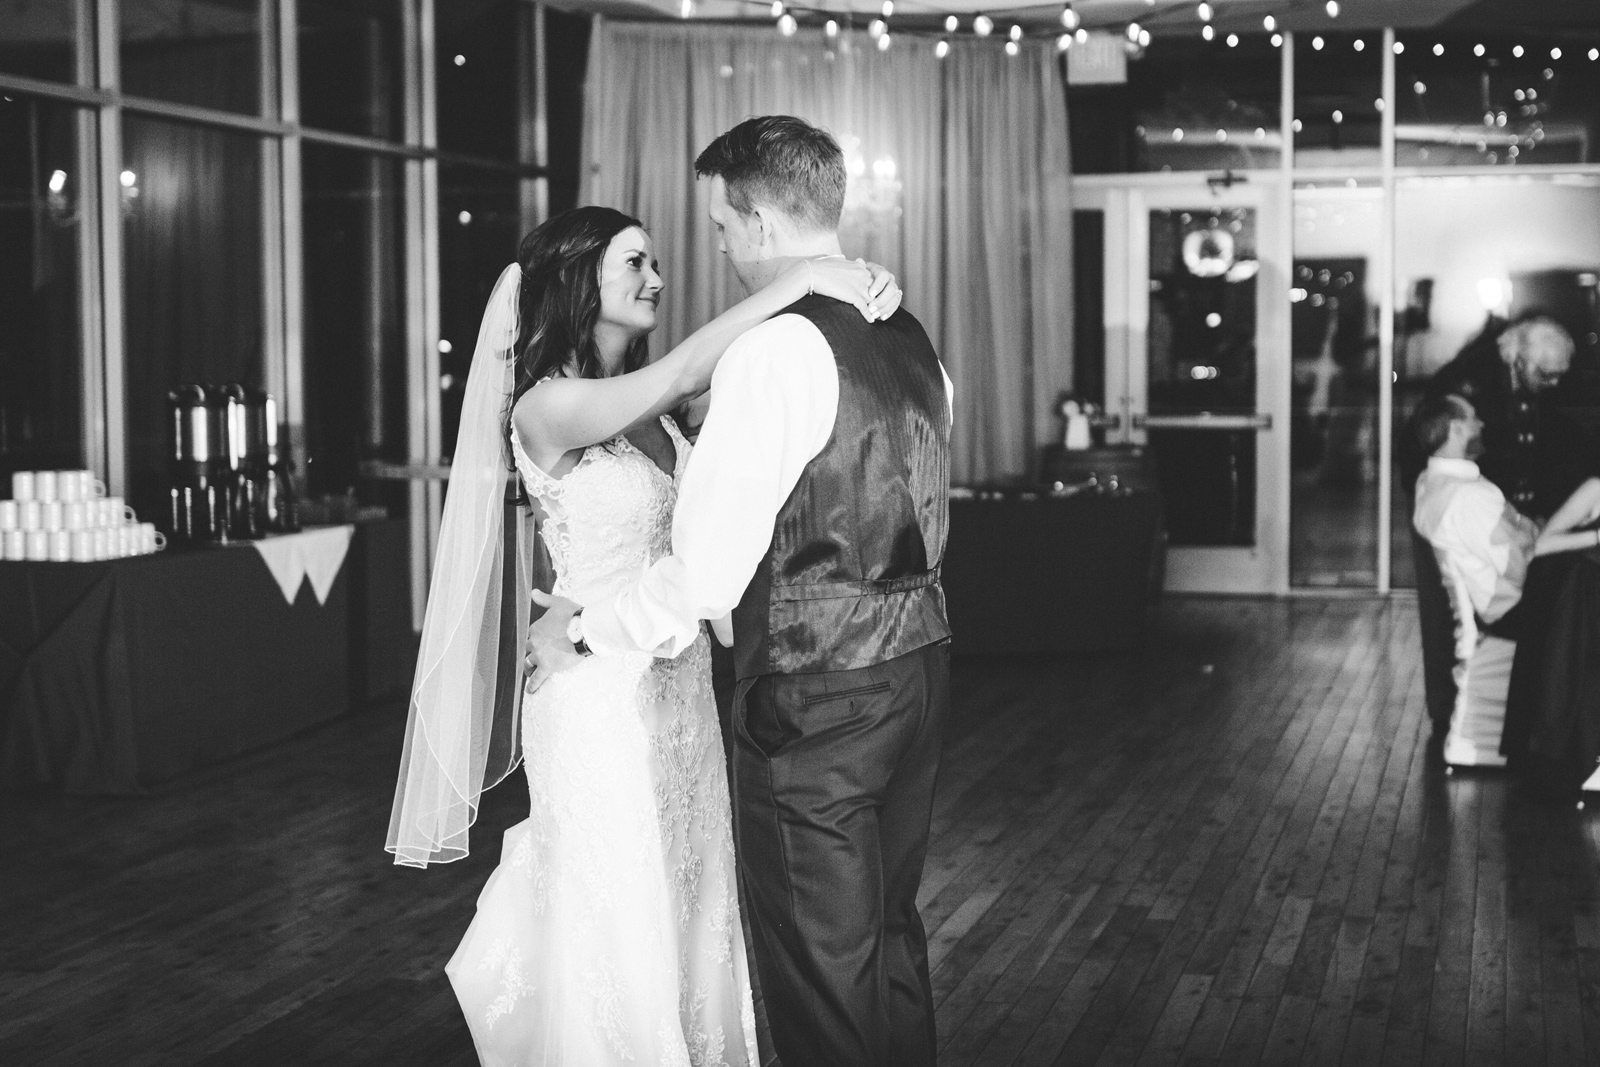 Haley&Jared-Wed-770.jpg